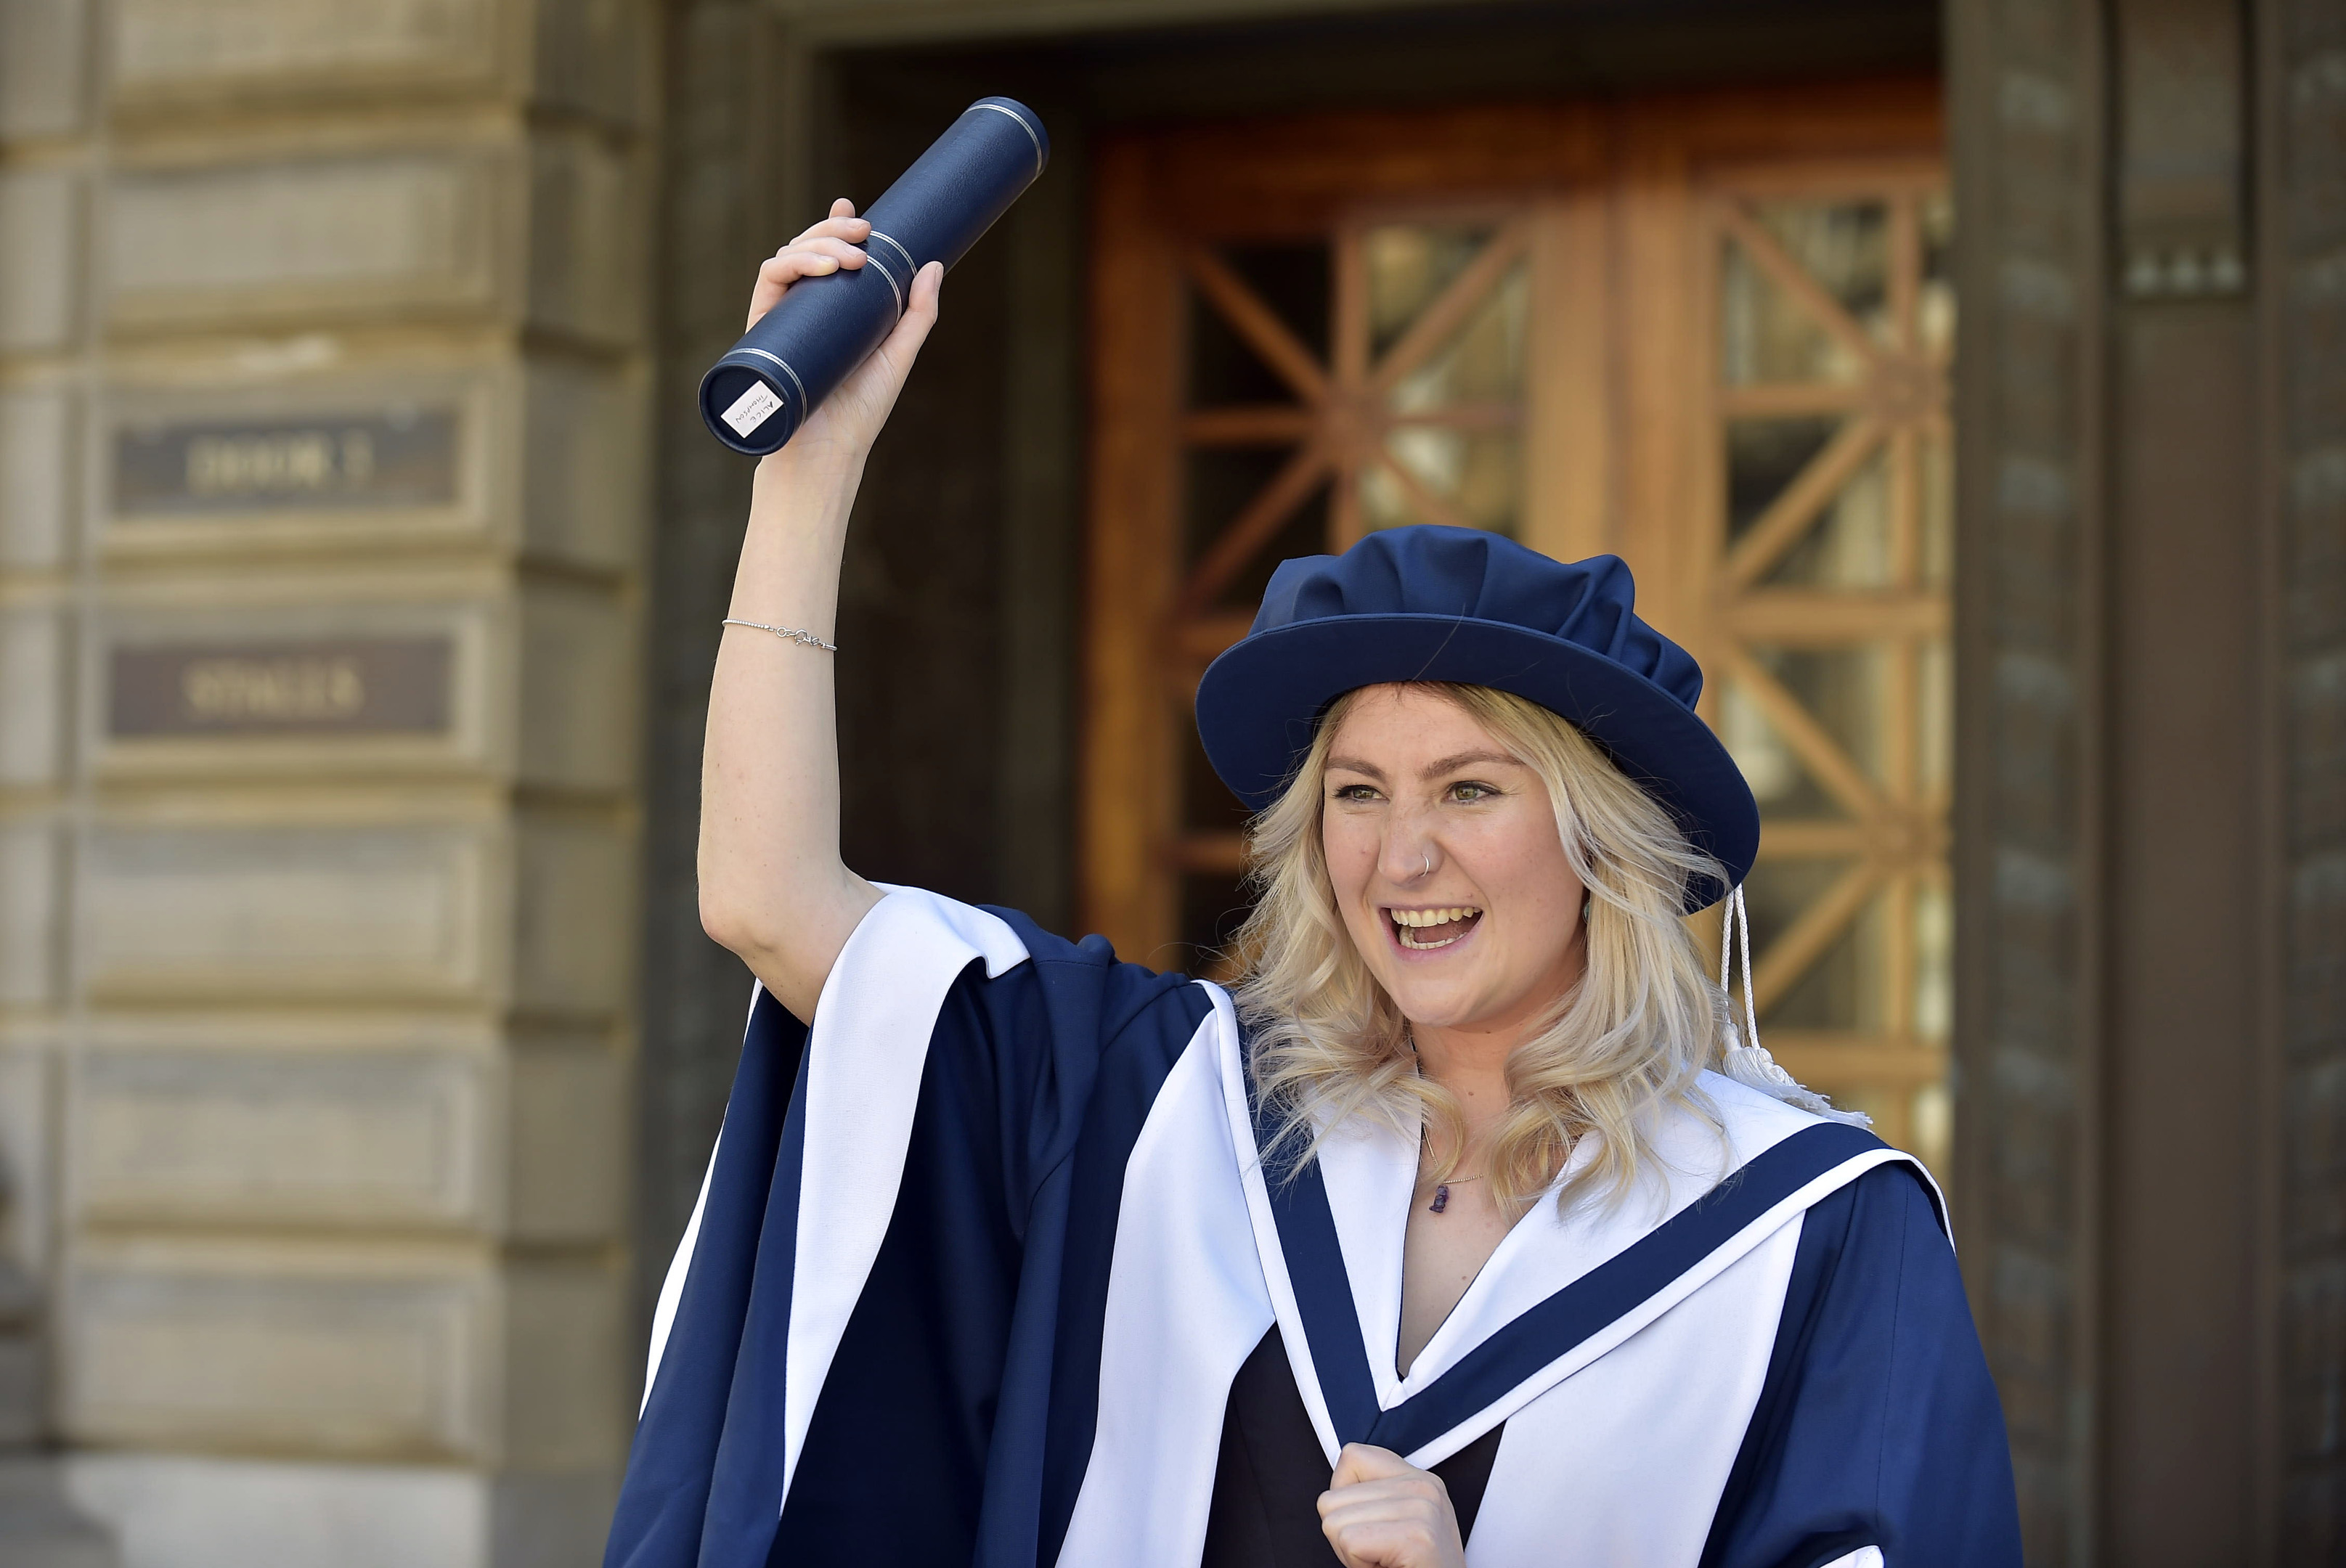 © Sandy young Photography 07970 268944 honorary degrees from Queen Margaret University. PICTURED  Alice Thompson , co-founder of Social Bite with her honorary degree at the Usher Hall, Edinburgh.  E: sandyyoungphotography@gmail.com W: www.scottishphotographer.com **Editorial use only**no photo sales**no marketing** credit must read scottishphotographer.com**